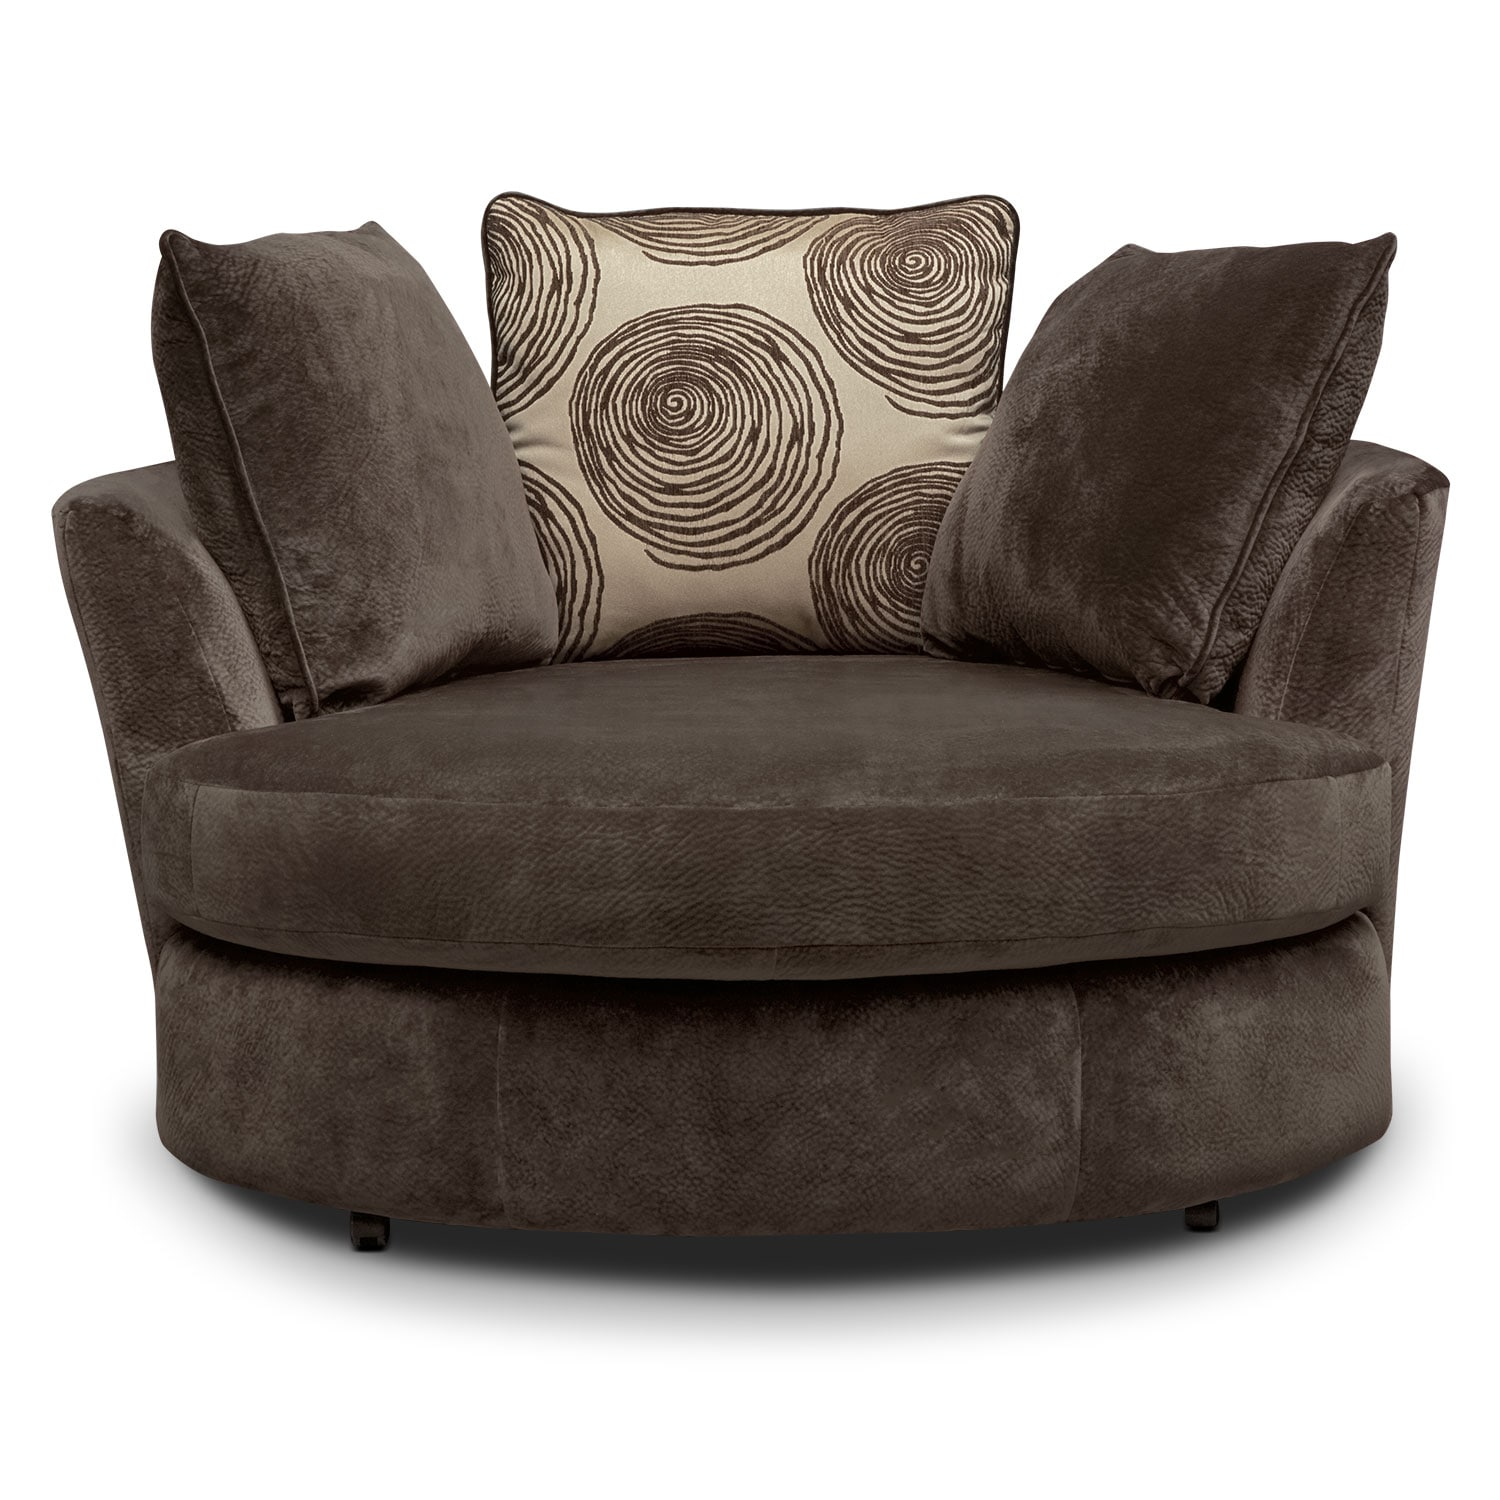 Couch Chair Cordelle Swivel Swivel Chair Value City Furniture And